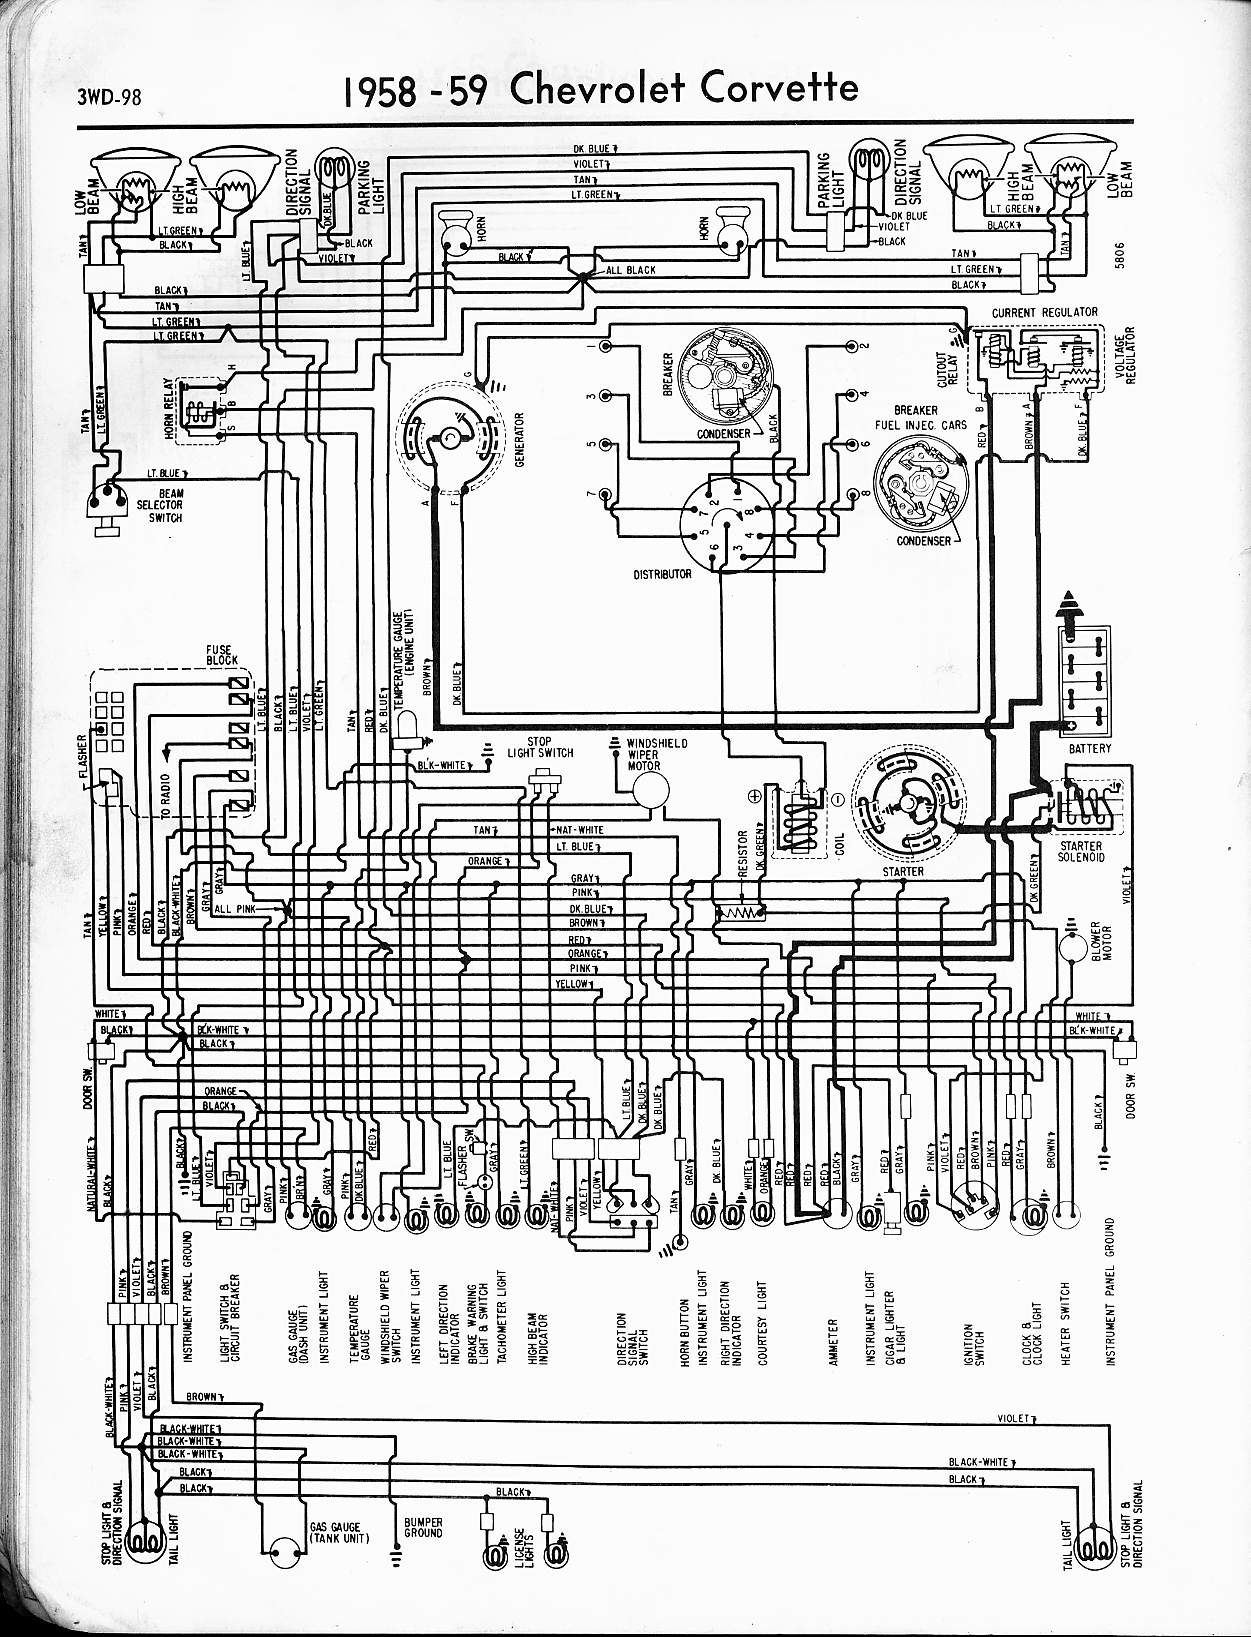 1965 Chevrolet Wiring Diagram Another Blog About 1999 Sv650 57 65 Chevy Diagrams Rh Oldcarmanualproject Com C20 C10